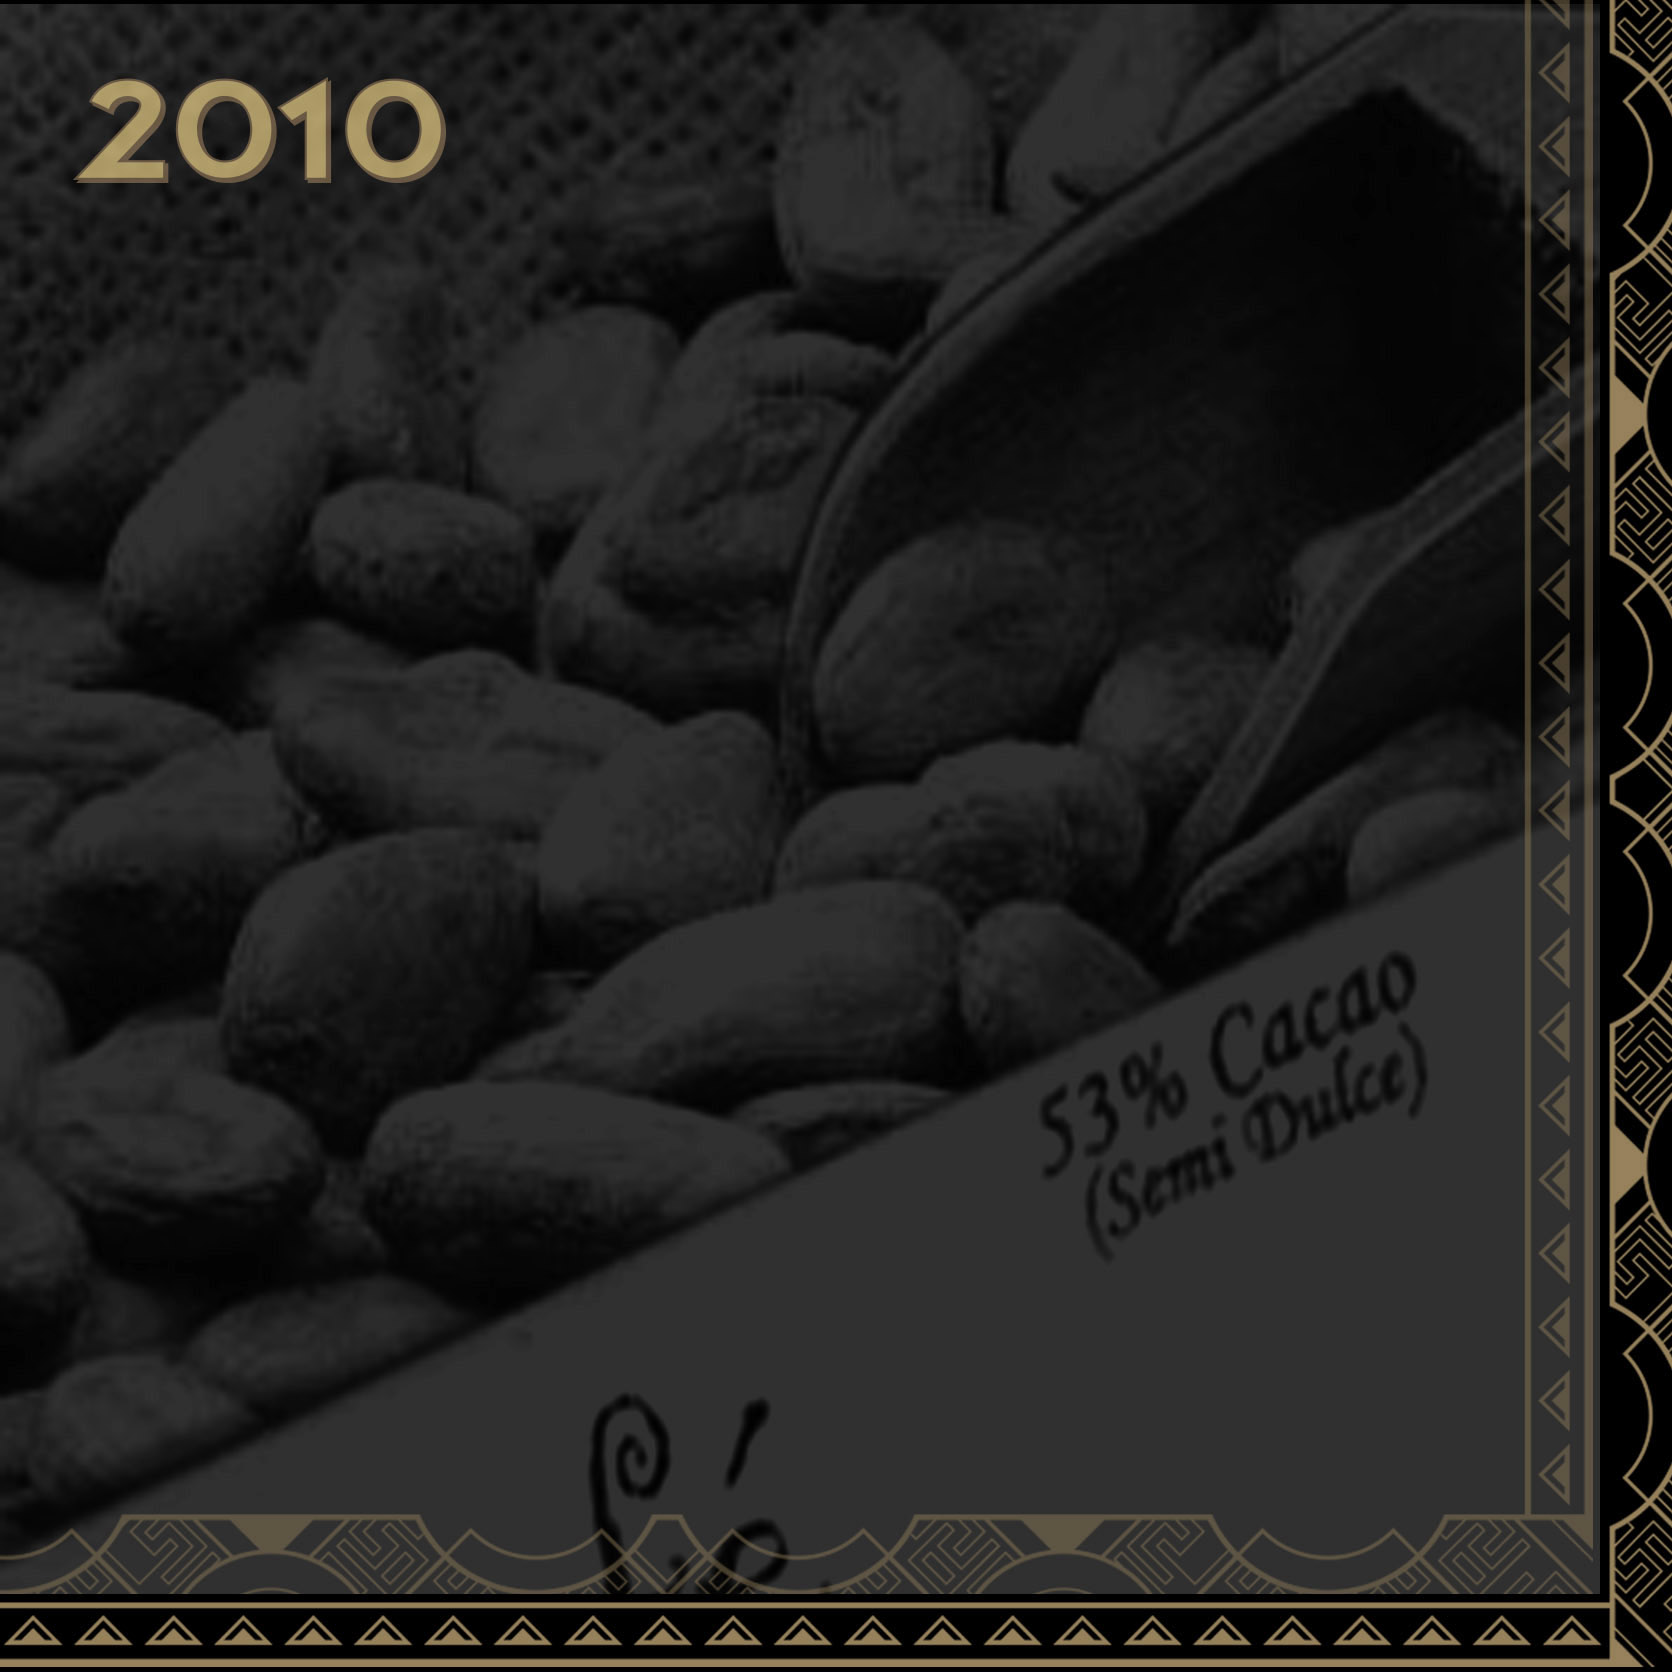 While living in Colombia, Daniel could not find good chocolate like he was used to getting in his native California. For that reason he started making these Café y Narajana chocolate bars, one crafted with coffee beans and the other flavored with orange. He soon found that other people enjoyed his chocolates too, so he started a little business venture making and selling chocolate bars in Colombia. -